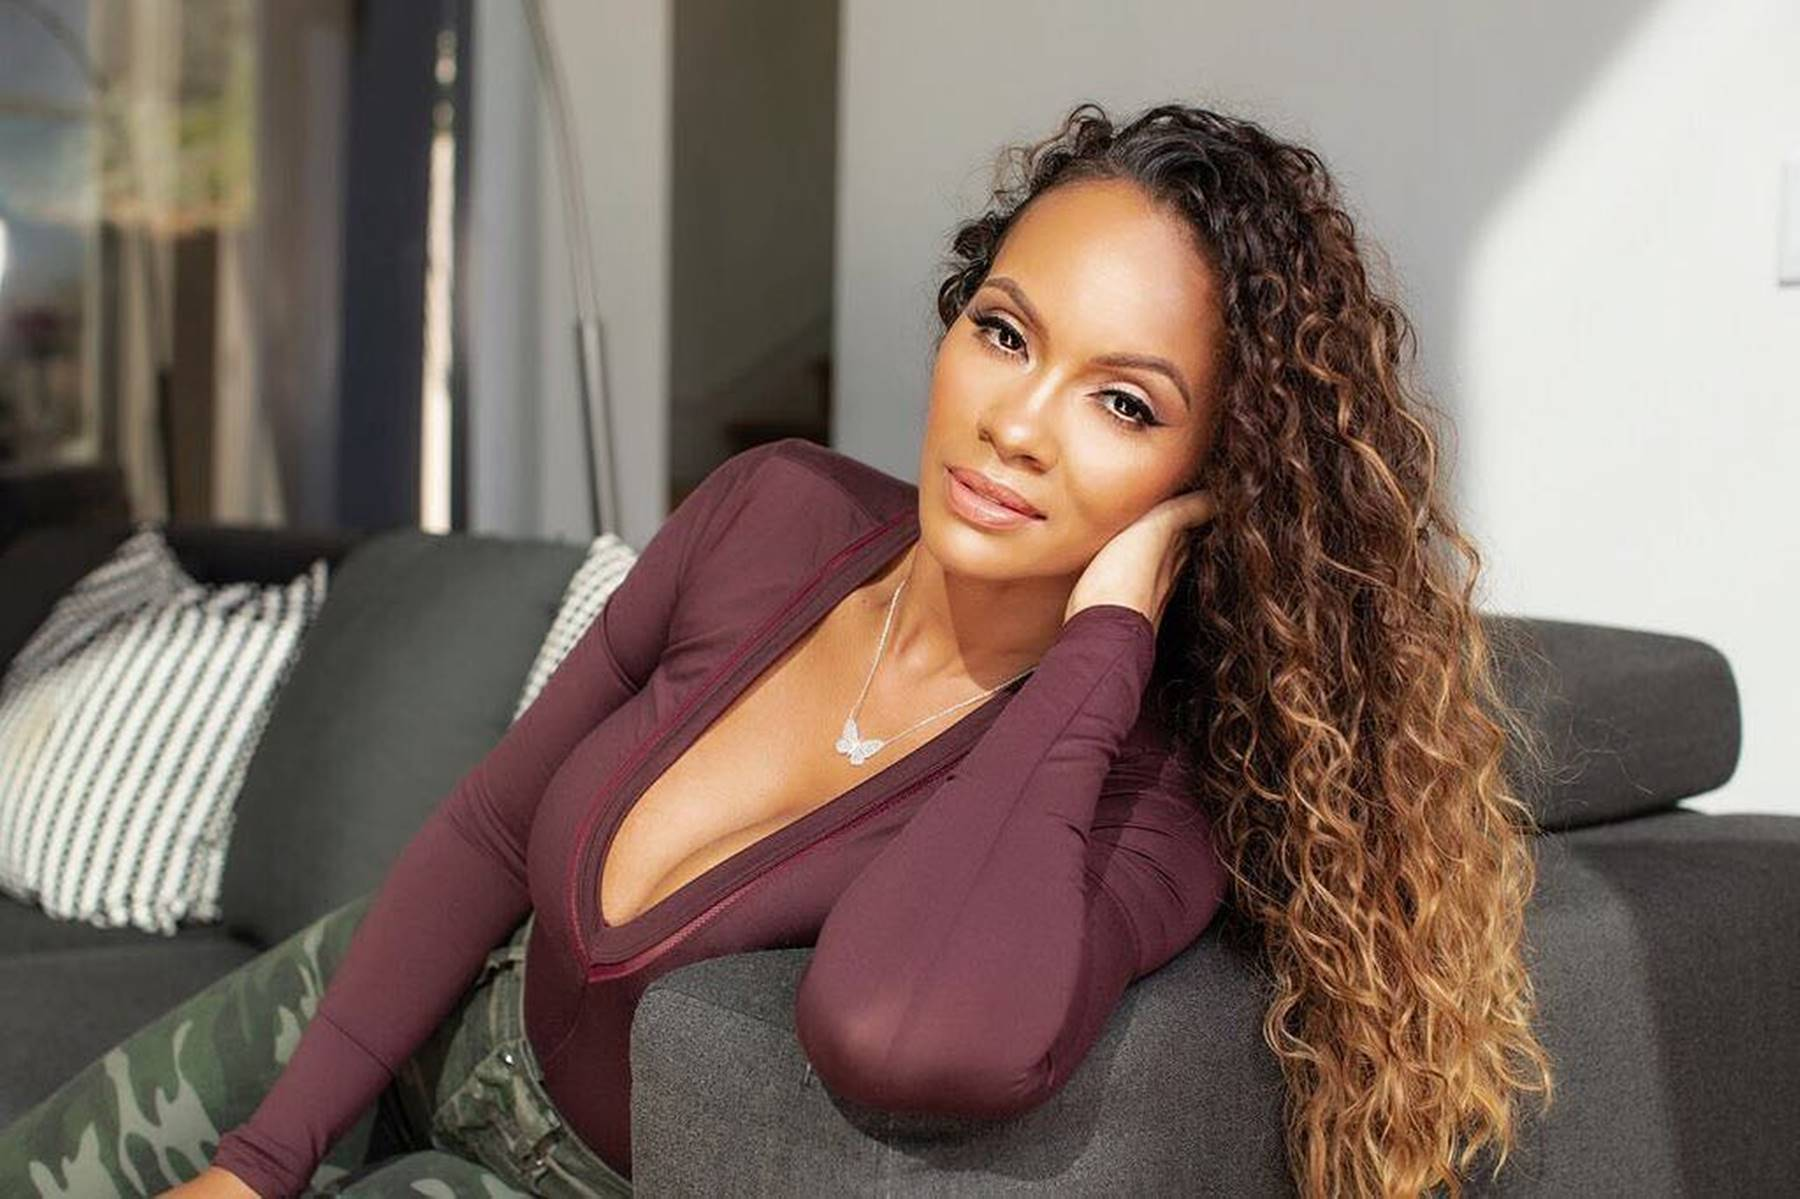 """Basketball Wives"" Star Evelyn Lozada Says She's Not Dating Rob Kardashian, But Would if Asked"